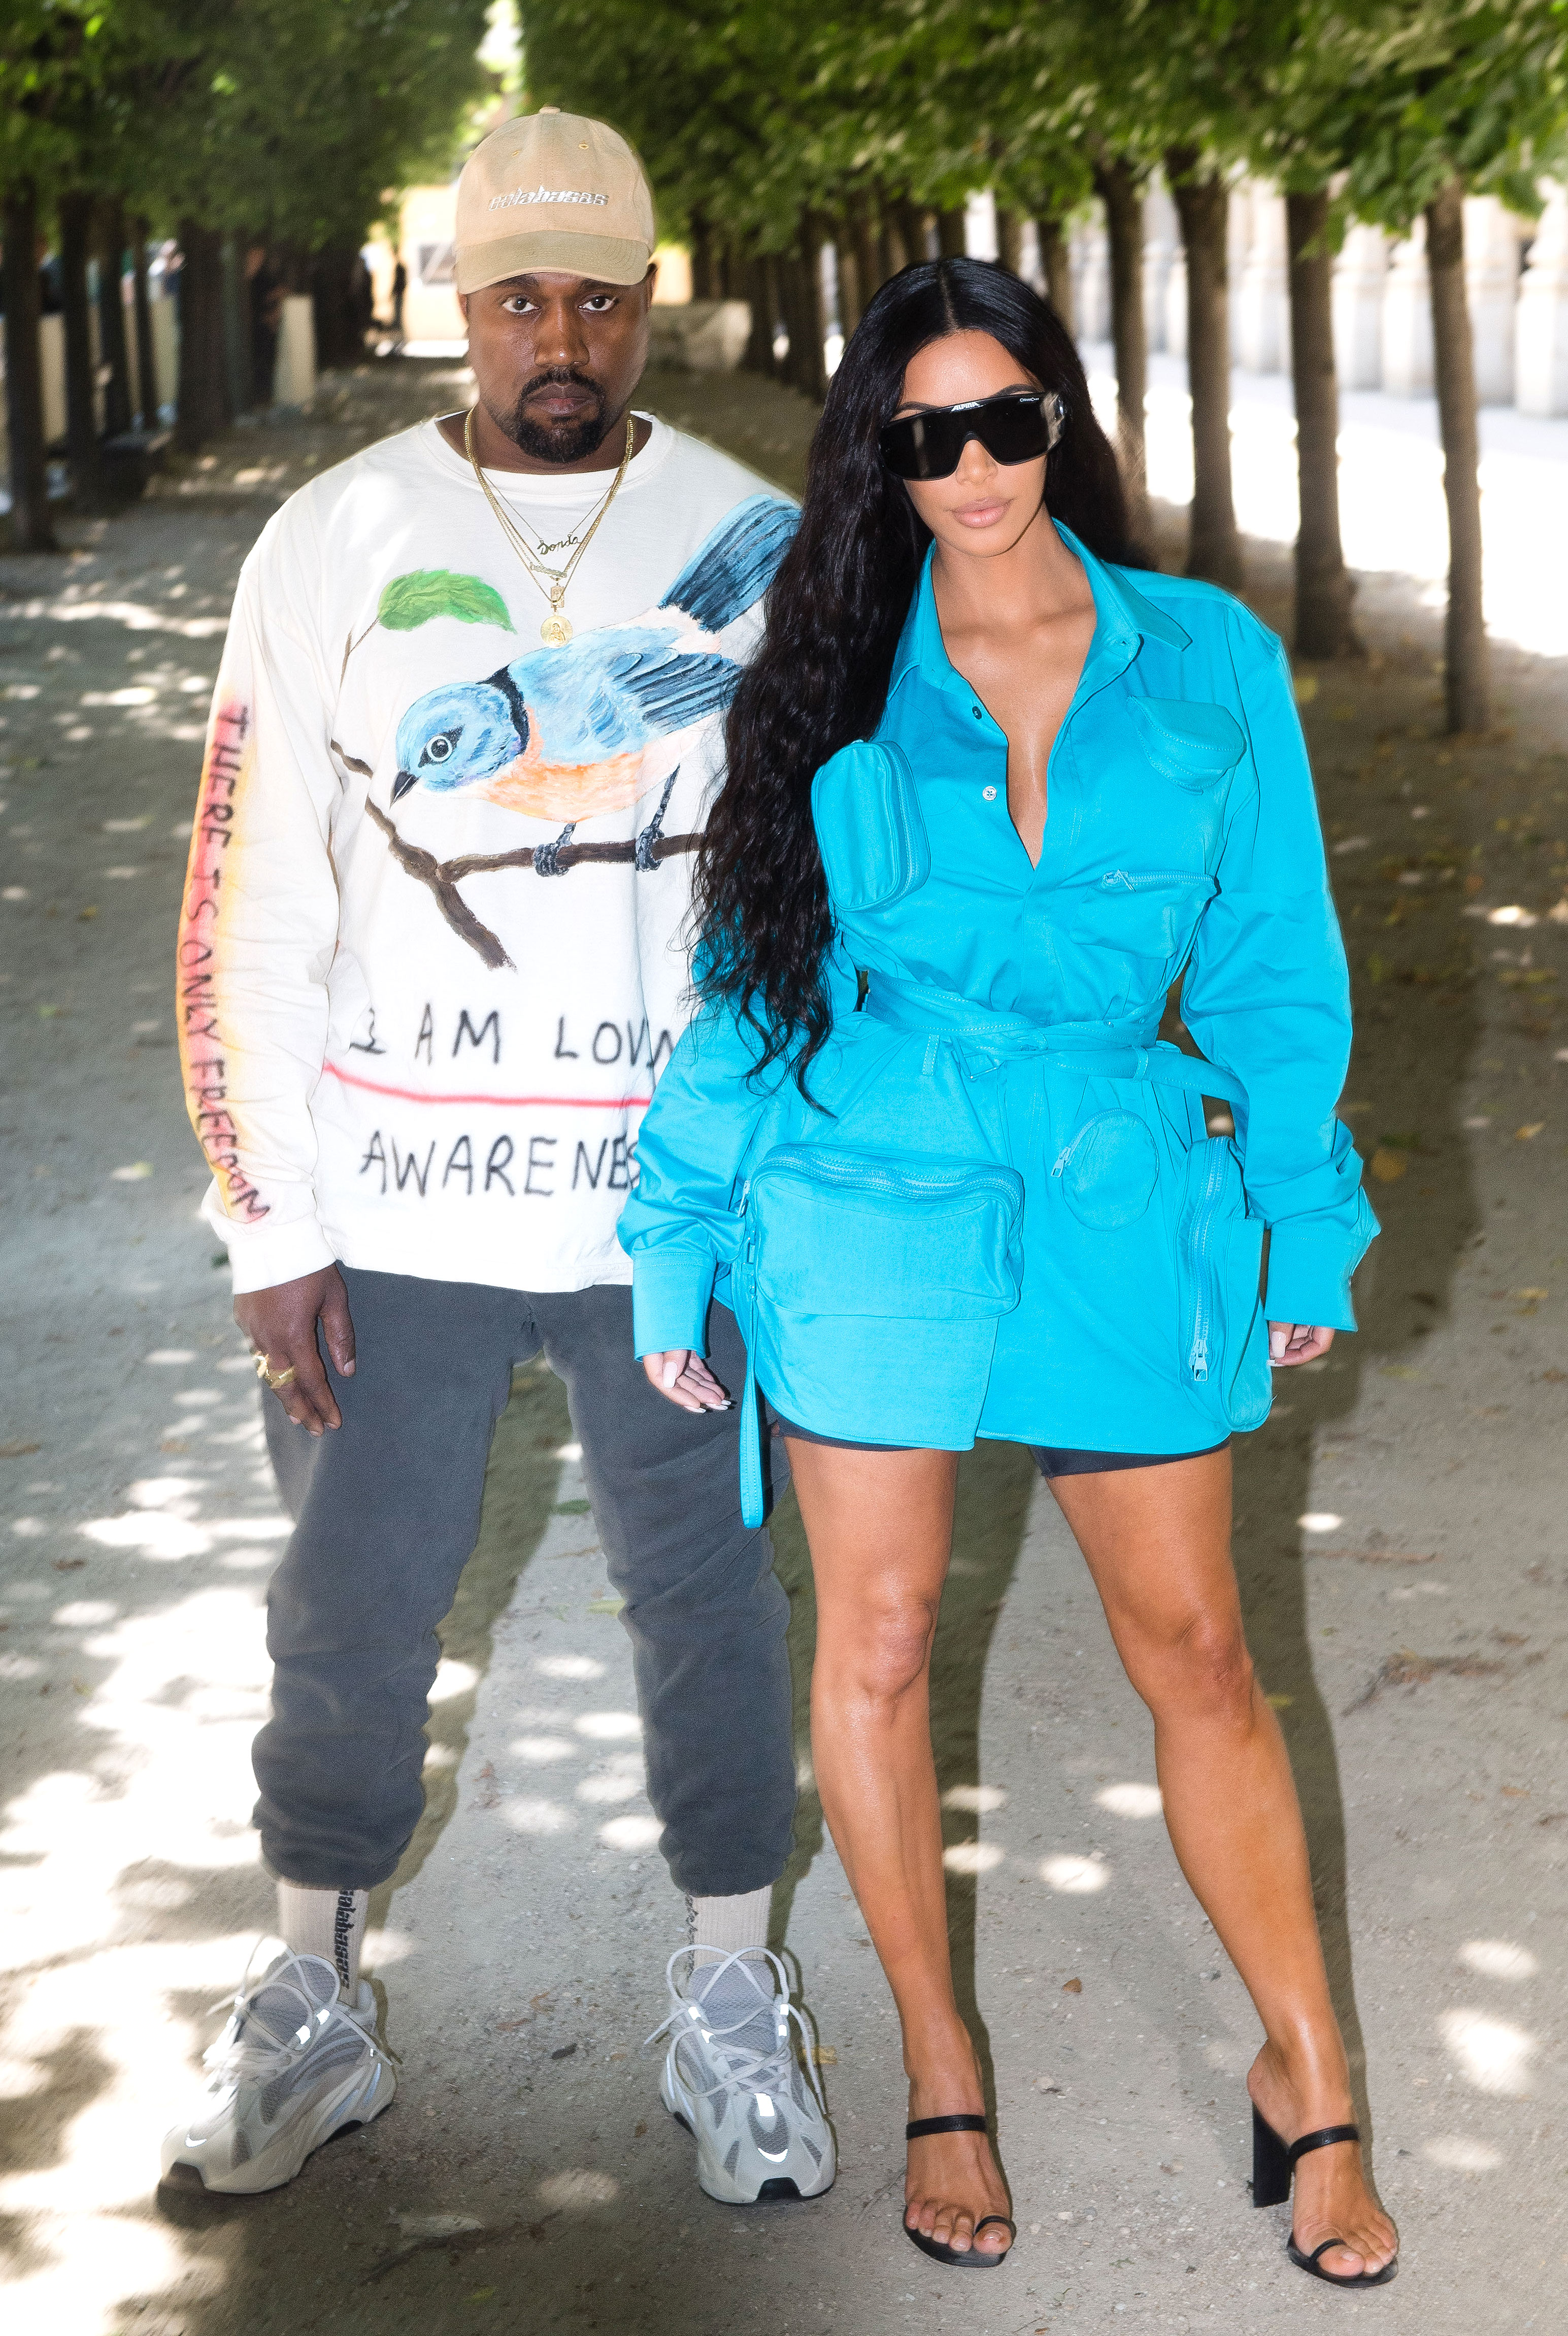 Kanye West and Kim Kardashian - PARIS, FRANCE – JUNE 21: Kanye West and Kim Kardashian attends the Louis Vuitton Menswear Spring/Summer 2019 show as part of Paris Fashion Week Week on June 21, 2018 in Paris, France. (Photo by Stephane Cardinale – Corbis/Corbis via Getty Images)